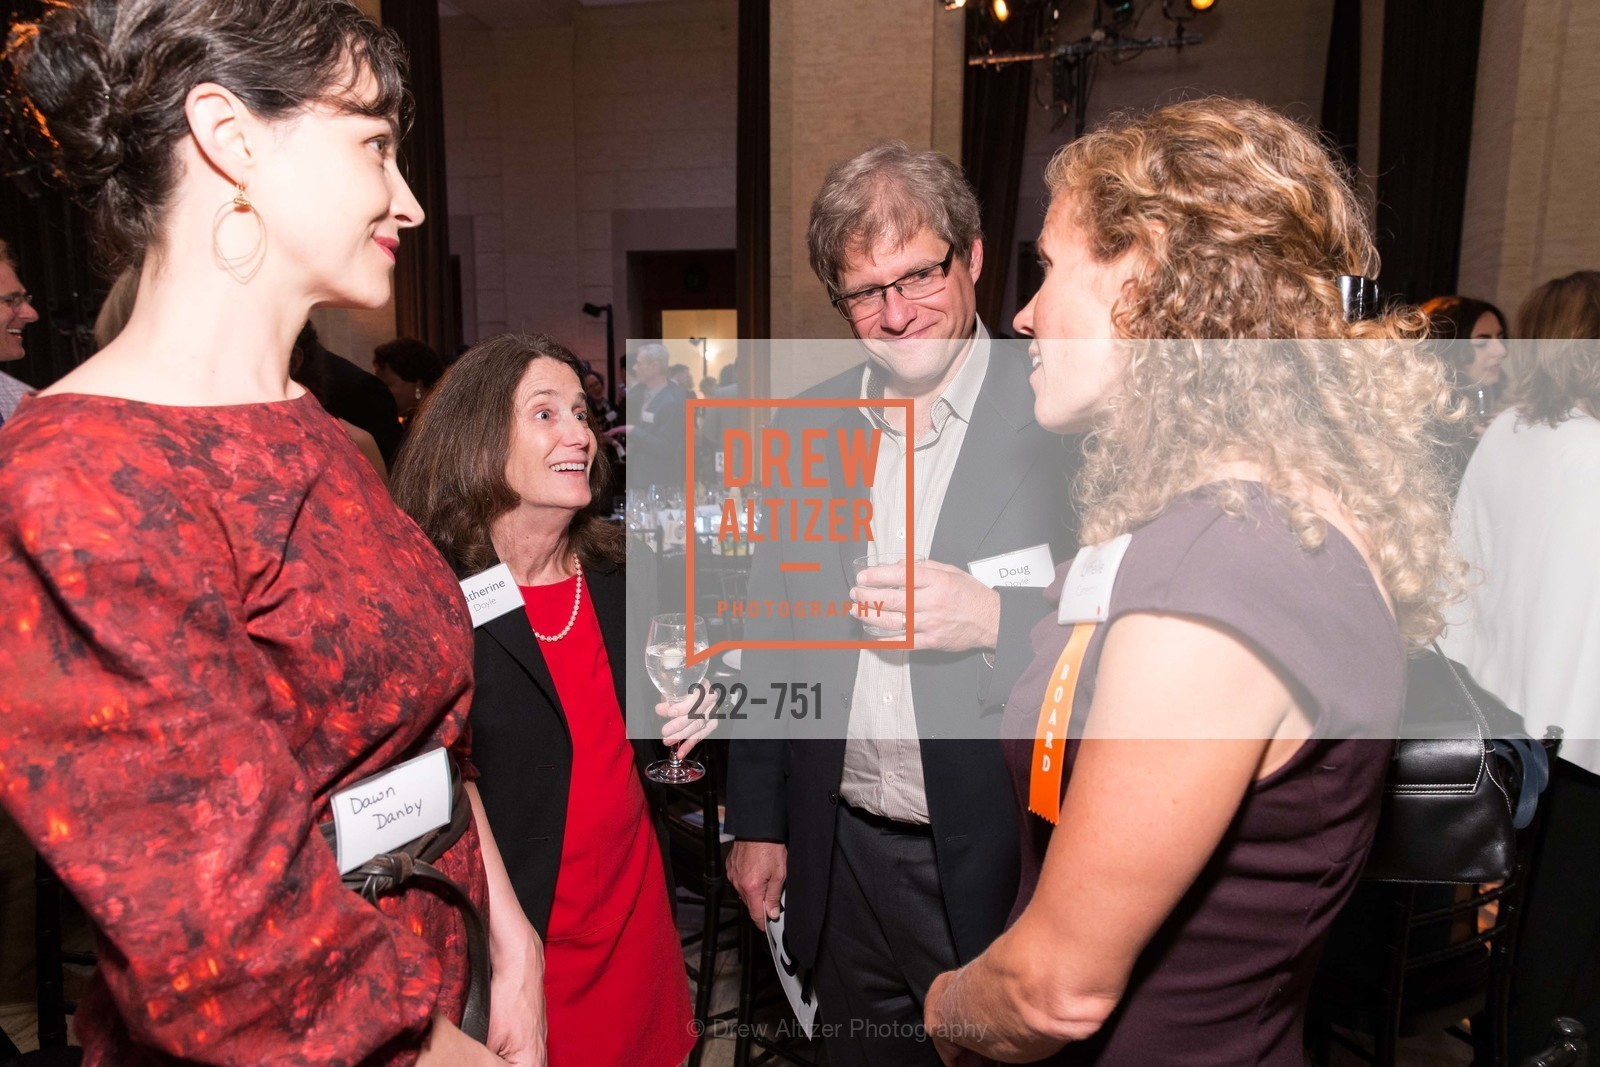 Dawn Danby, Catherine Doyle, Doug Doyle, Lynele Cameron, CENTER FOR ENVIRONMENTAL HEALTH (CEH) 2015 Gala, Bently Reserve, May 28th, 2015,Drew Altizer, Drew Altizer Photography, full-service agency, private events, San Francisco photographer, photographer california